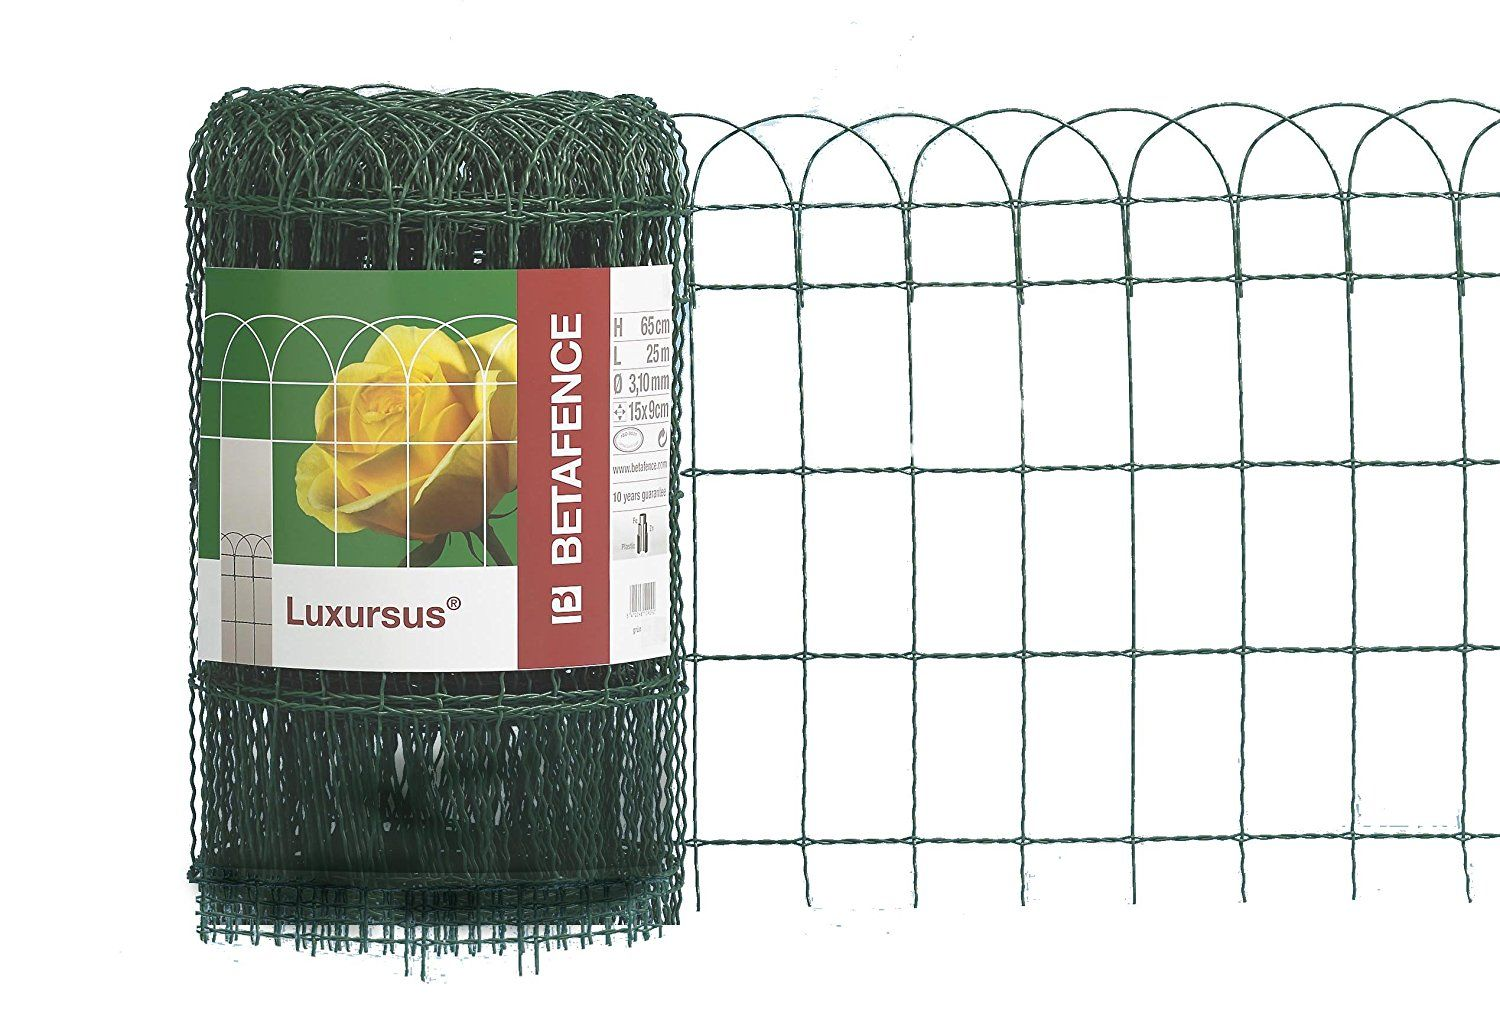 Luxursus Ral 6073 Welded Mesh Fence Wire Thickness 2 4 3 0 Mm Mesh Width 150 X 90 Mm Green 400 Mm Hhe 25 M Rolle Continue Wire Fence Mesh Fencing Fence